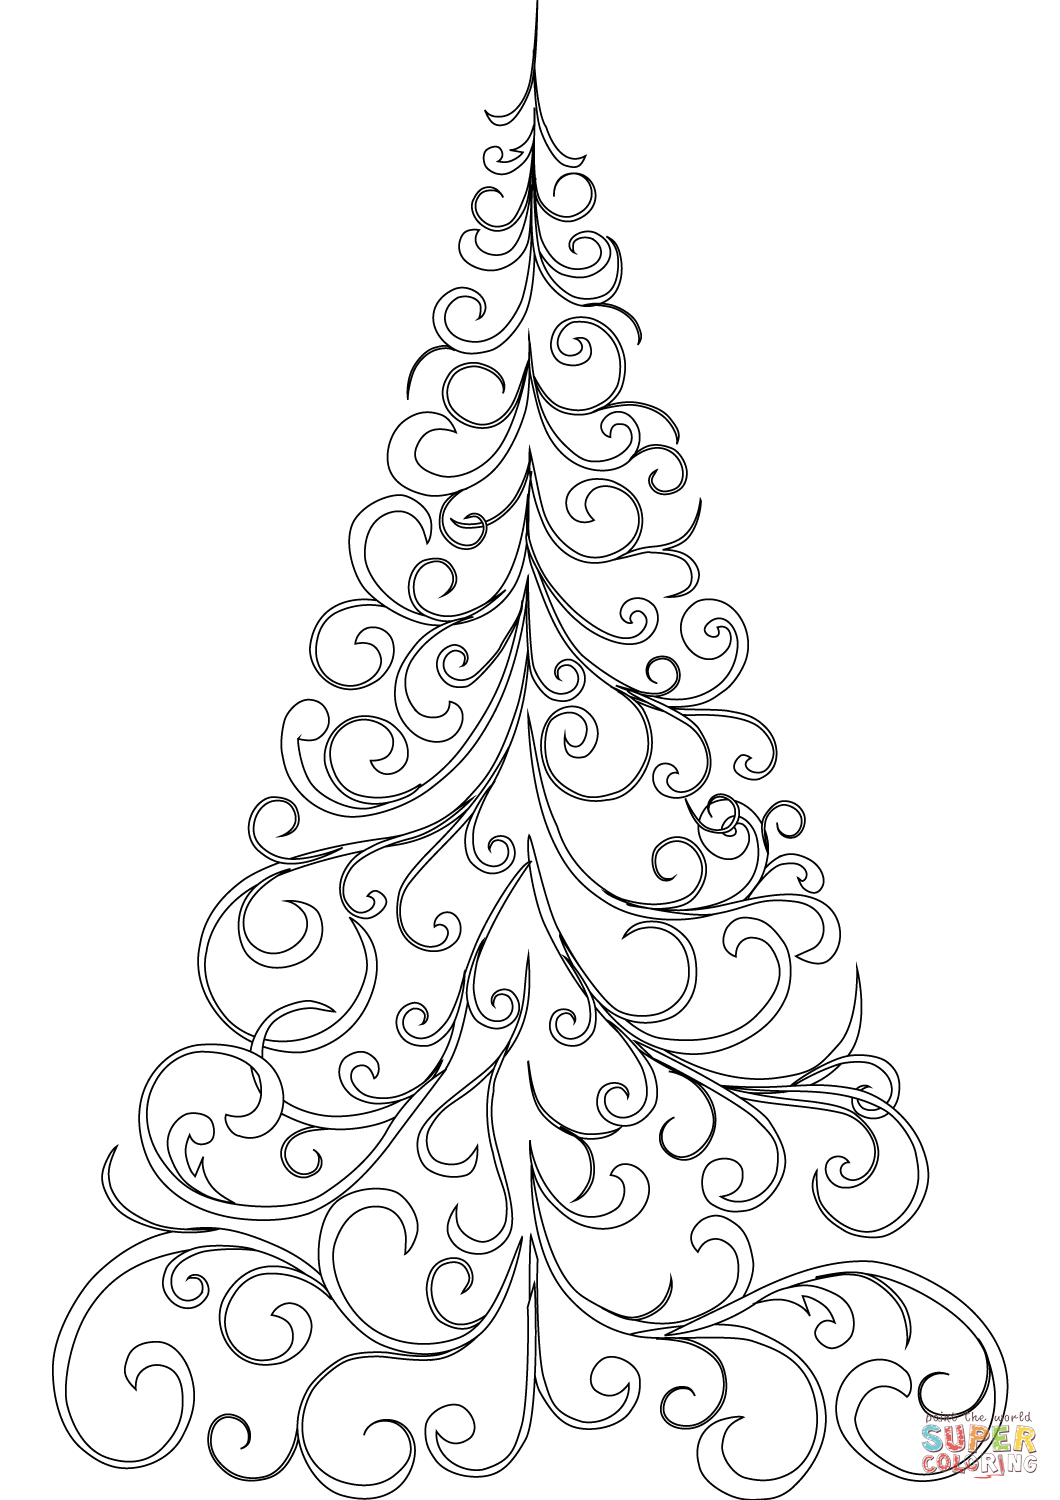 Swirly Christmas Tree Coloring Page Free Printable Coloring Pages Christmas Tree Coloring Page Printable Christmas Coloring Pages Christmas Tree Drawing